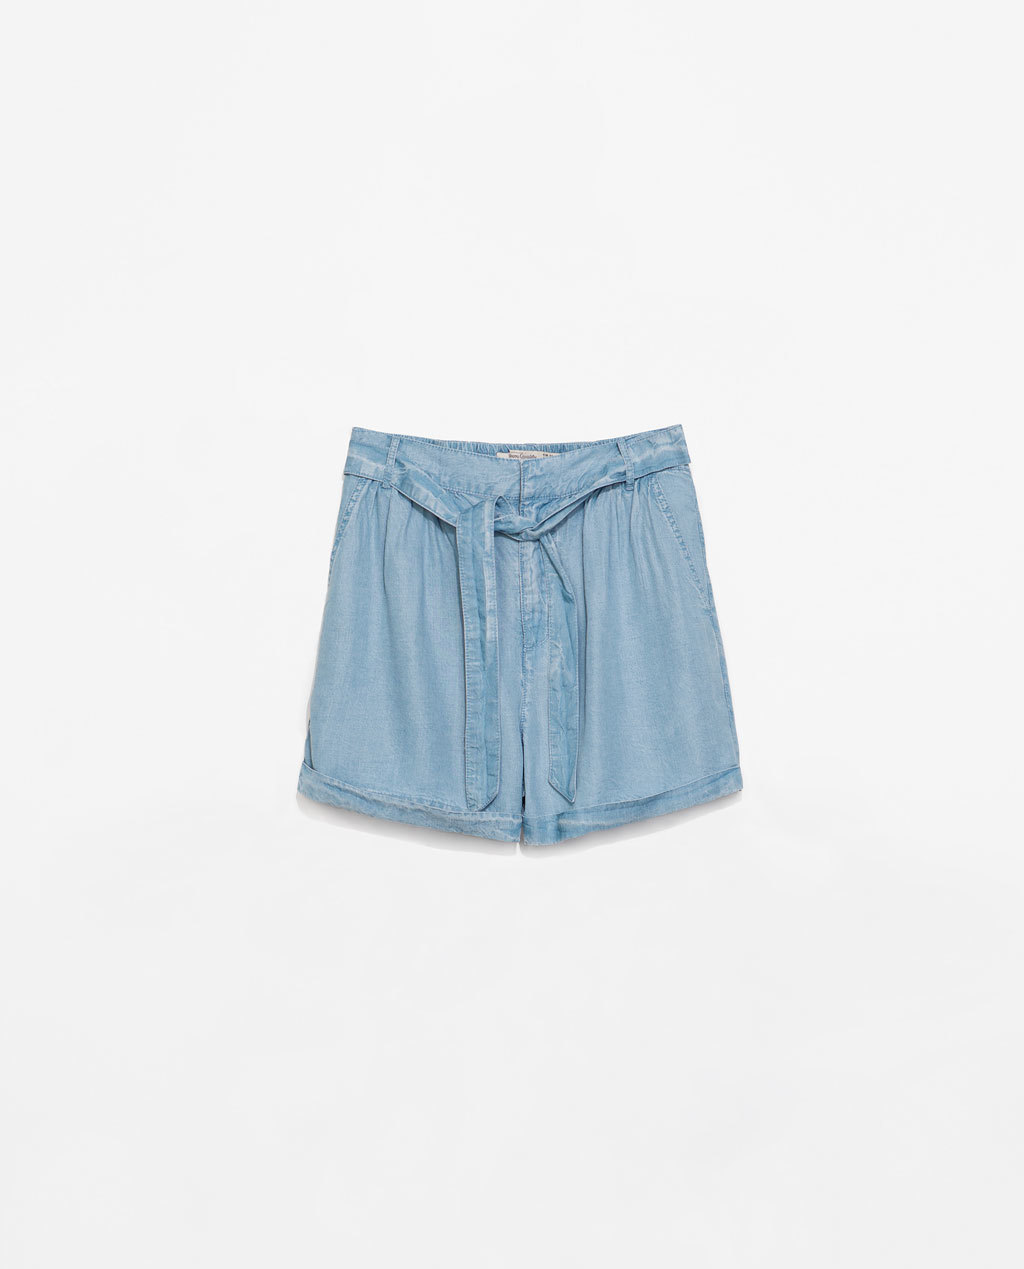 Shorts With Belt - pattern: plain; waist: high rise; waist detail: belted waist/tie at waist/drawstring; predominant colour: denim; occasions: casual, holiday; fibres: cotton - 100%; texture group: cotton feel fabrics; pattern type: fabric; season: s/s 2014; style: denim; length: mid thigh shorts; fit: baggy